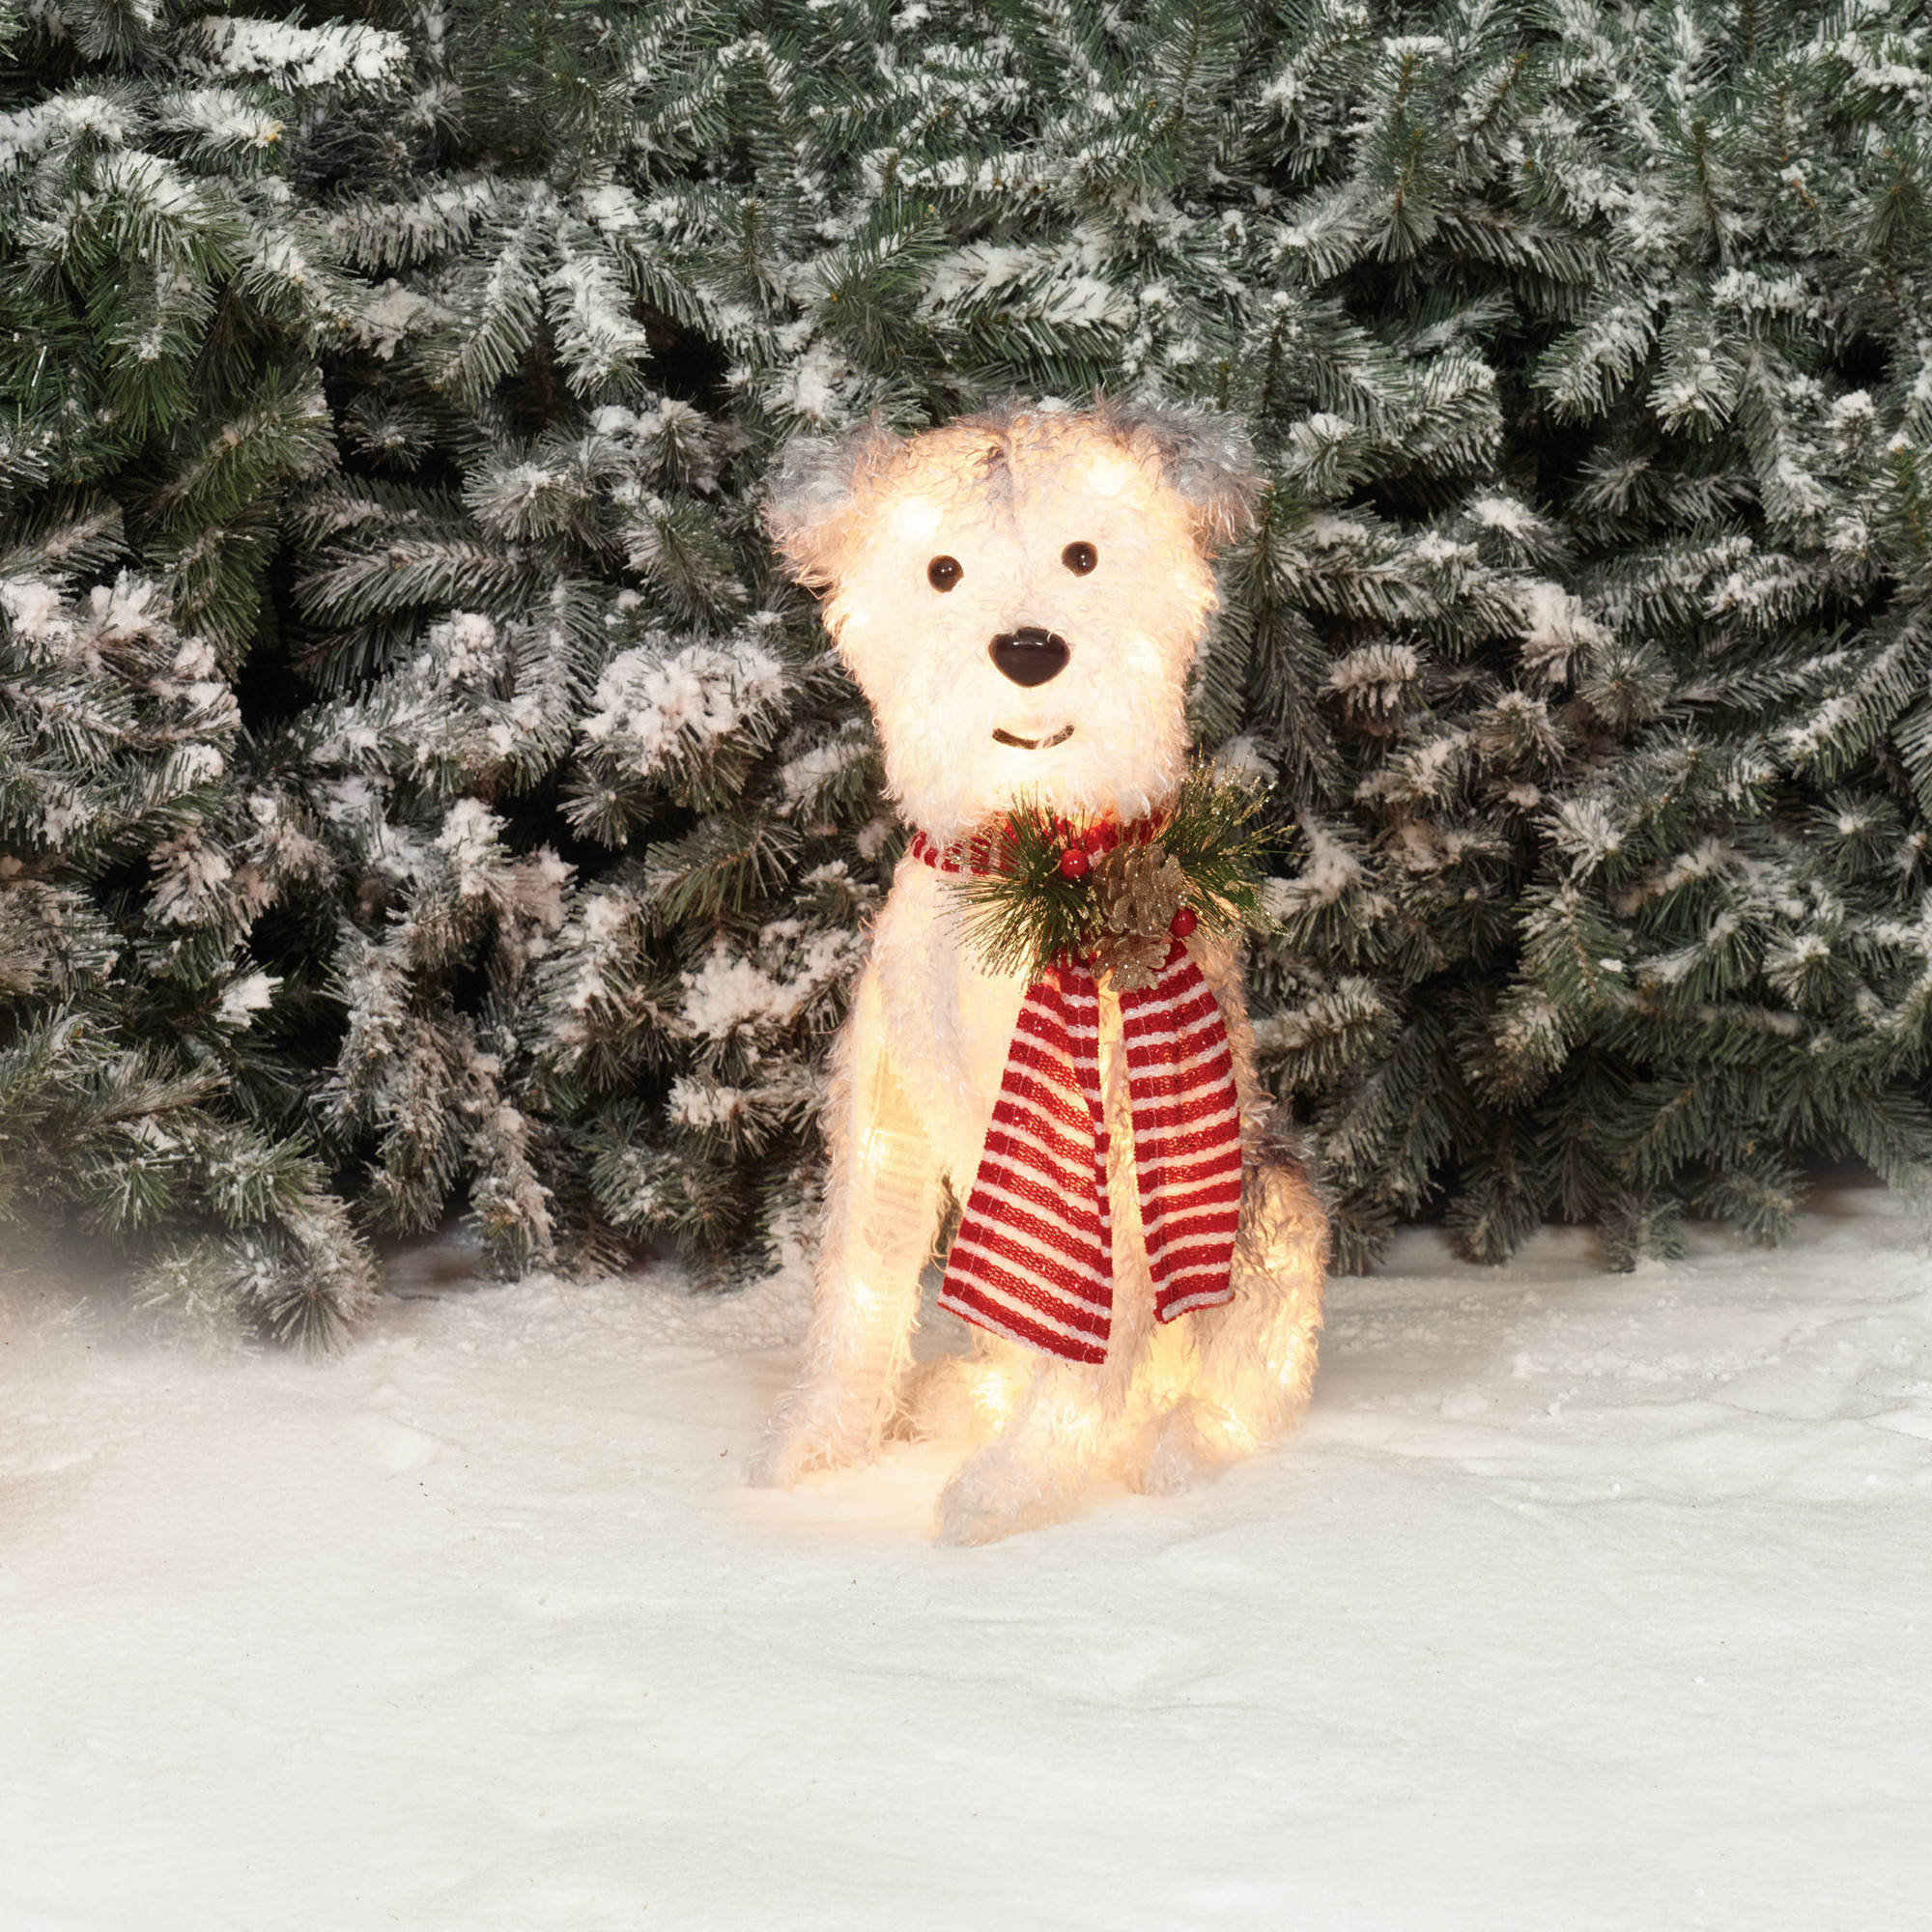 holiday time christmas decor 22 fluffy dog with scarf sculpture walmart com - Walmart Christmas Yard Decorations